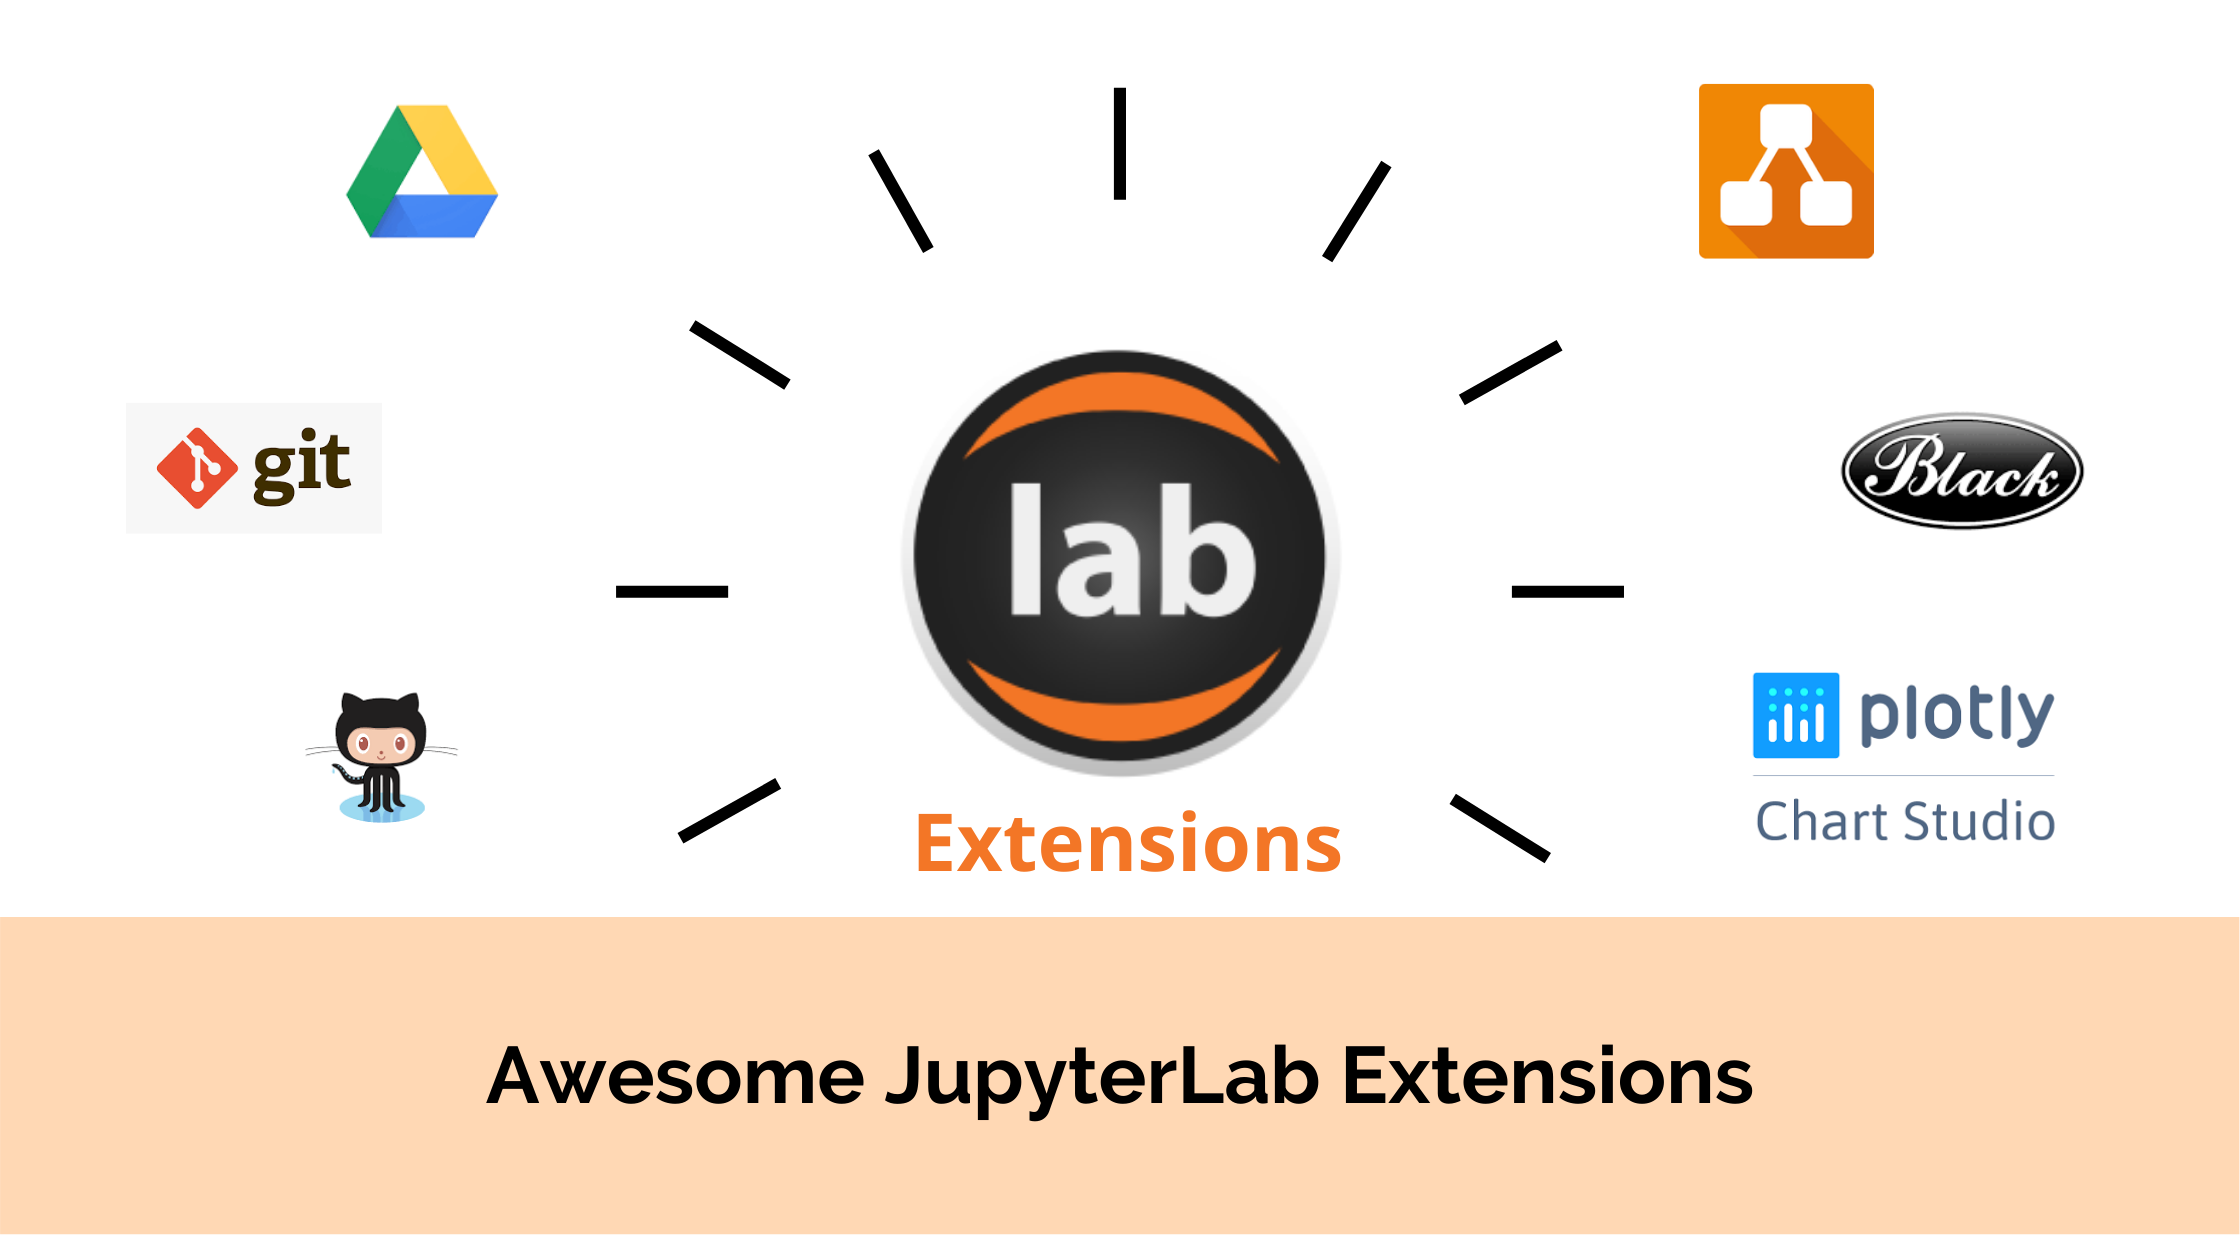 Awesome JupyterLab Extensions